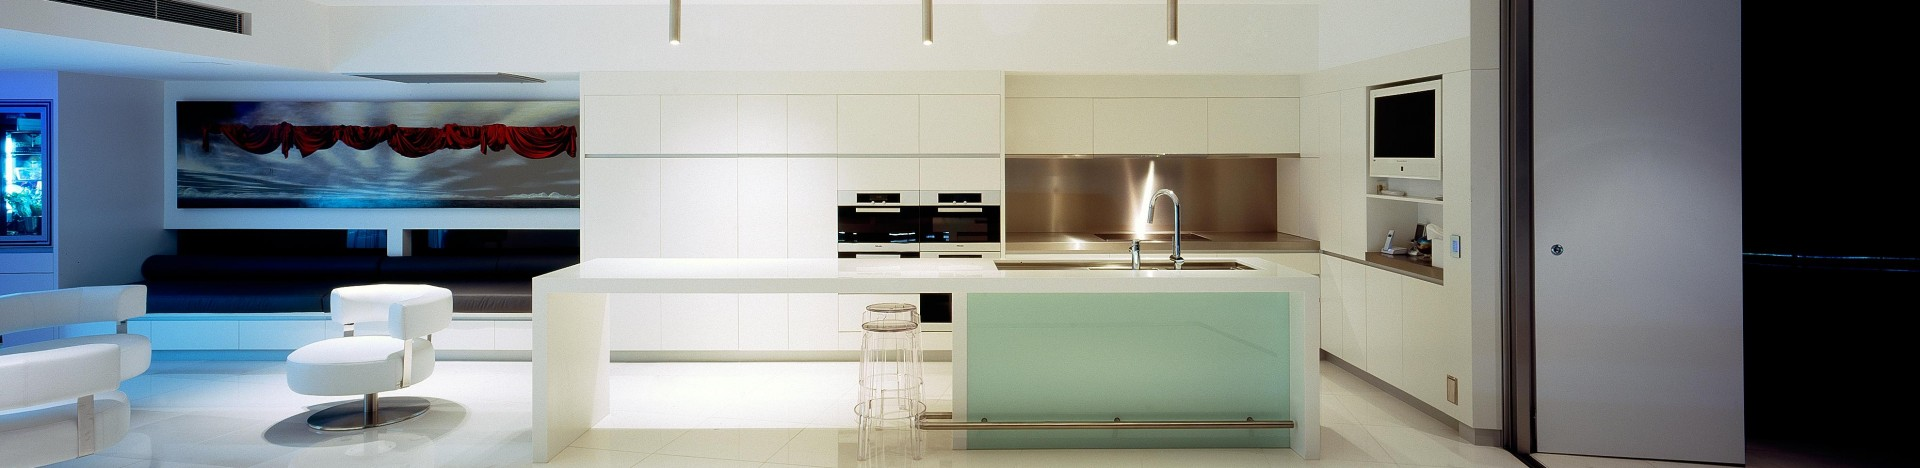 Minka Joinery Luxury Kitchens